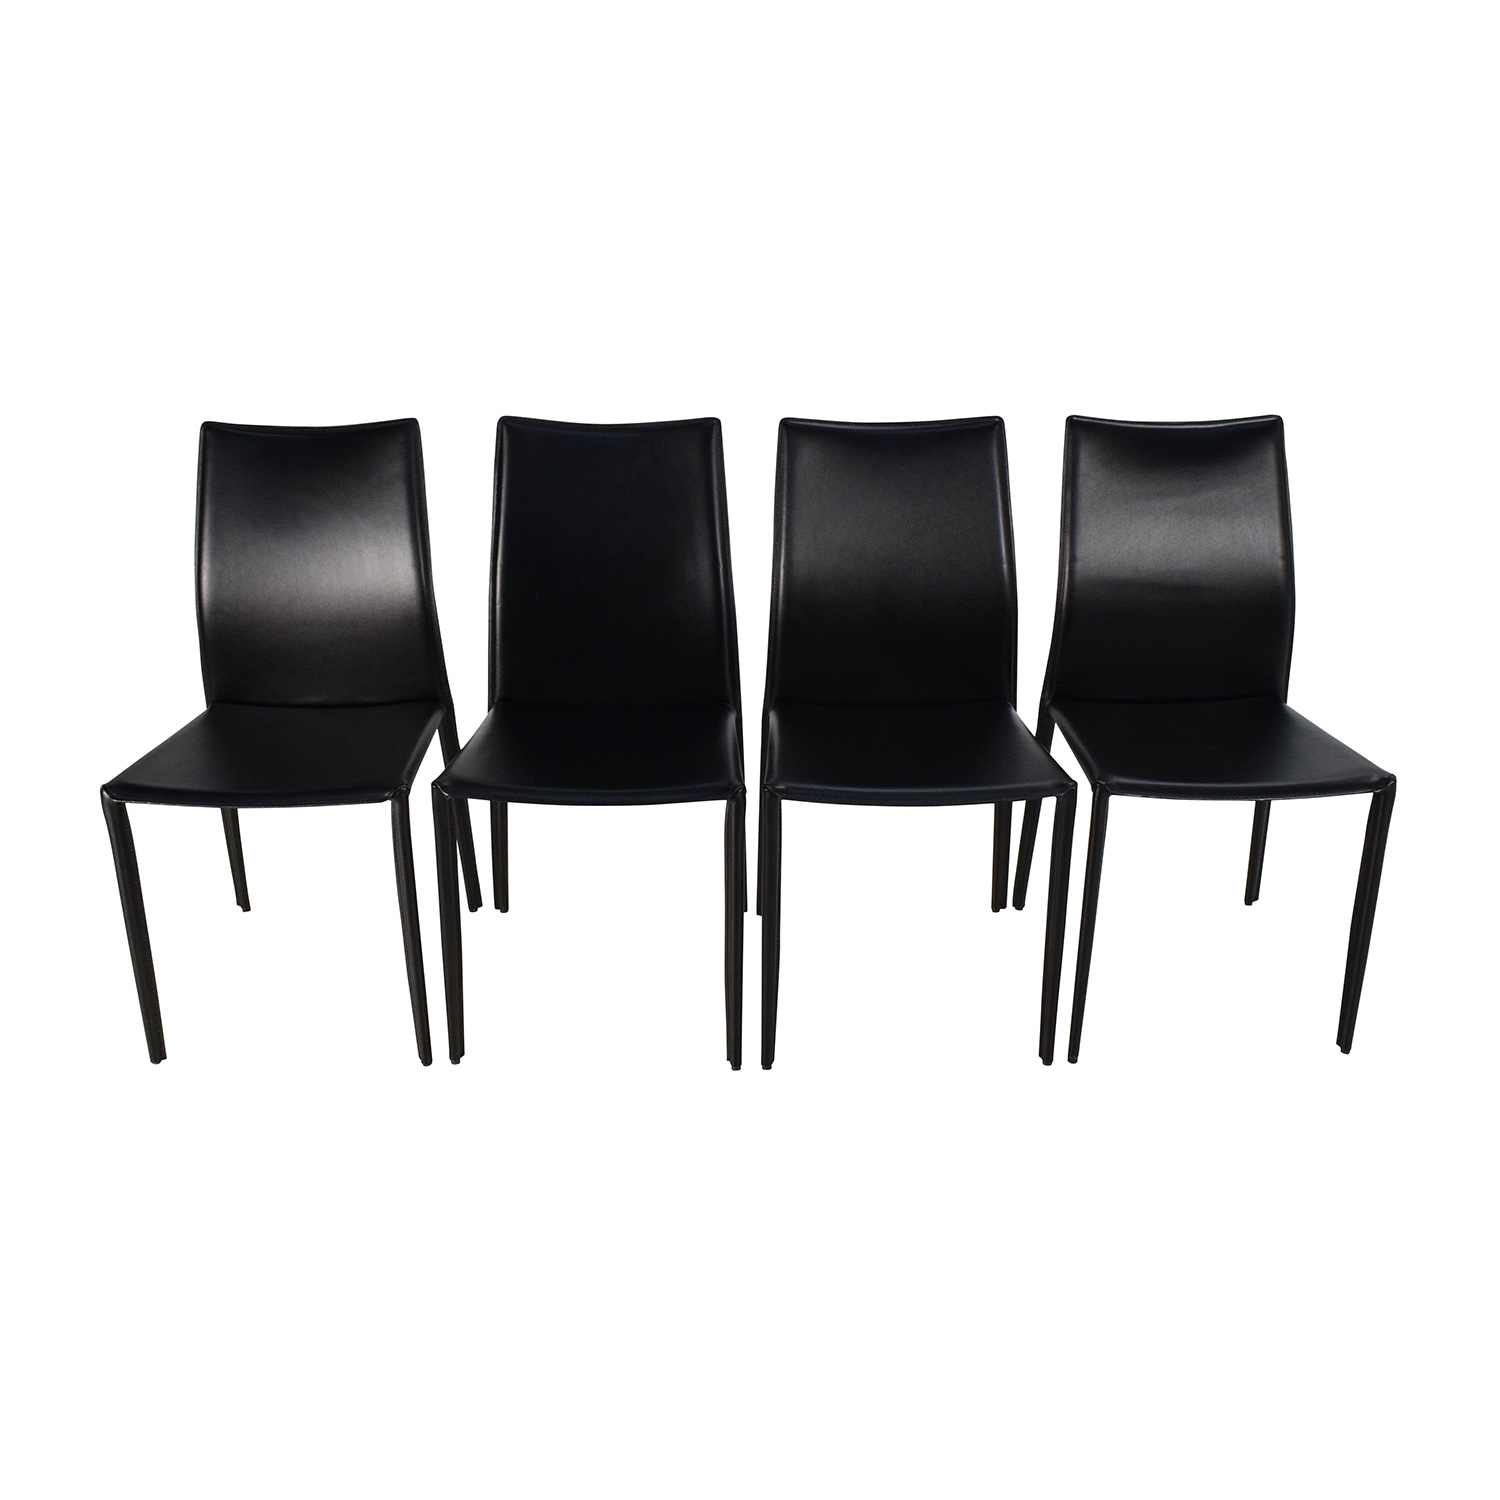 Modani Modani Bellagio Contemporary Dining Chair Set second hand